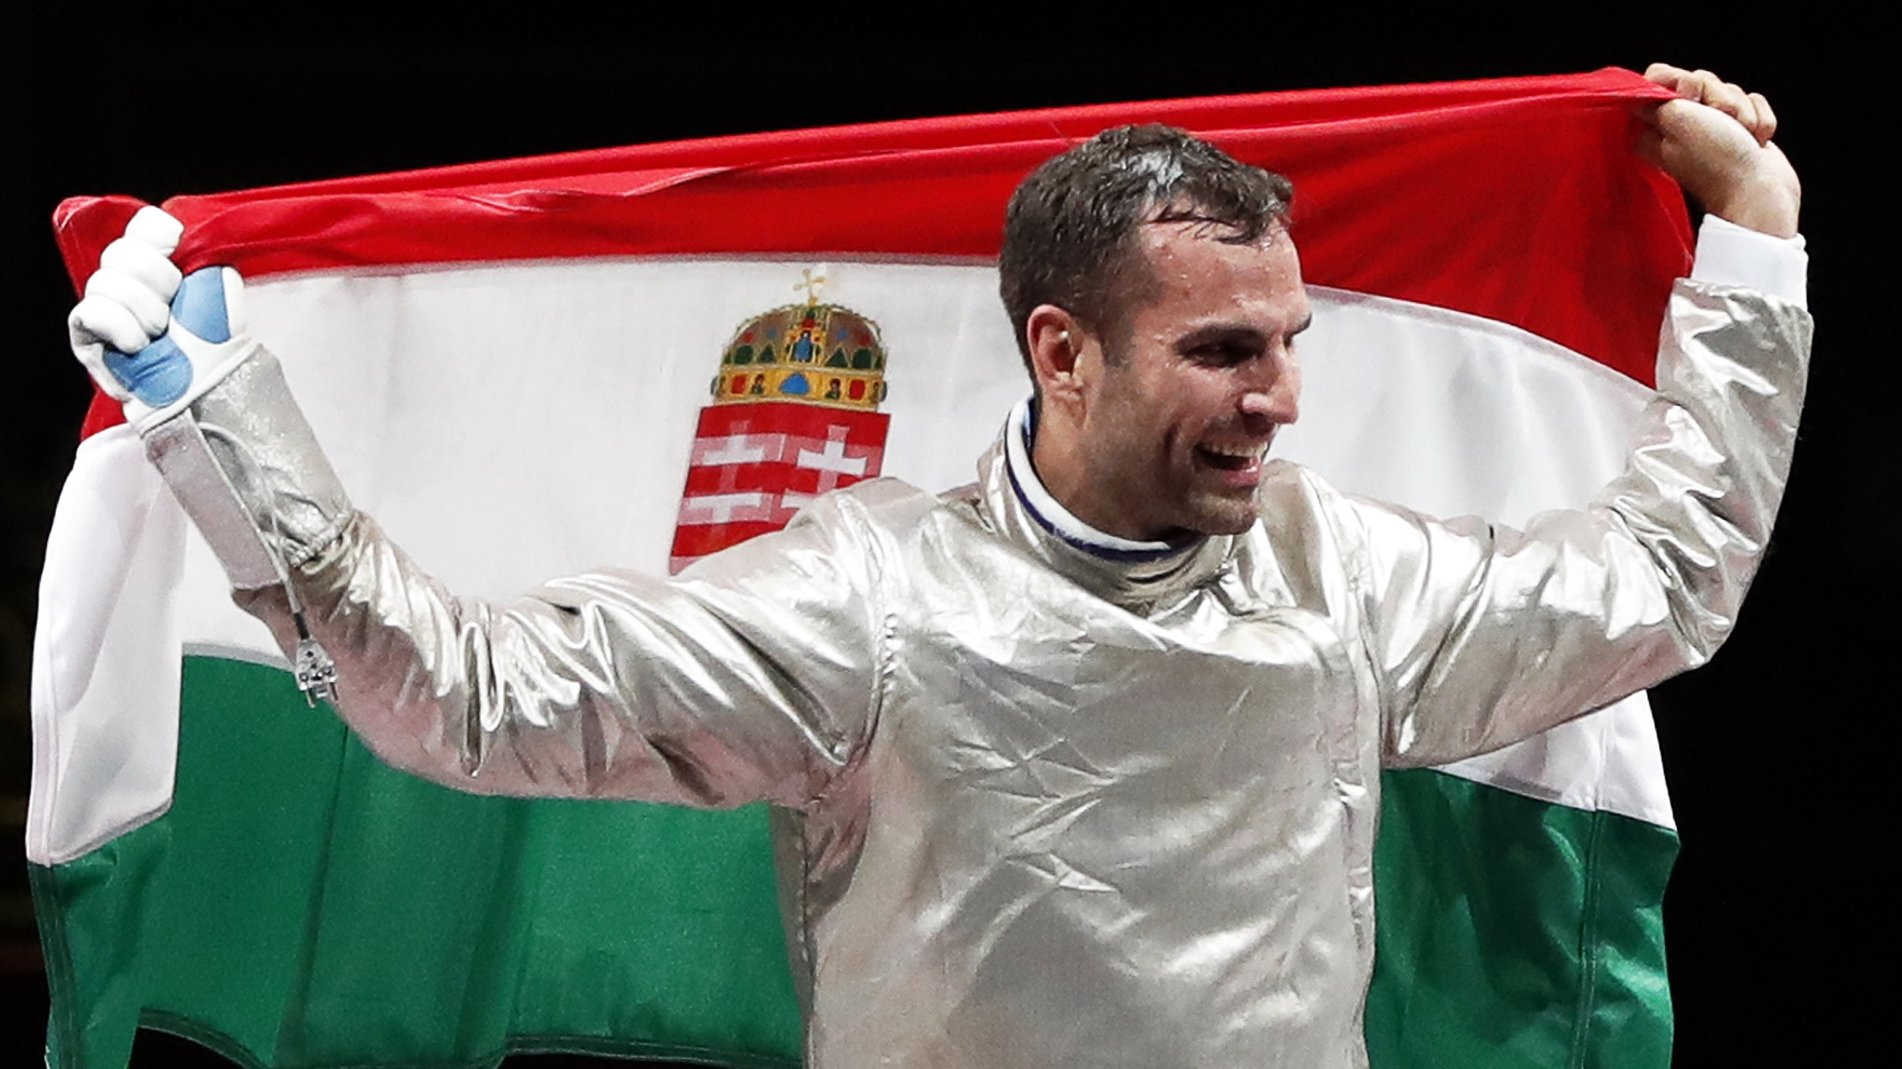 epa09362140 Aron Szilagyi of Hungary celebrates winning the gold medal during the men's Sabre individual Gold Medal Bout during the Fencing events of the Tokyo 2020 Olympic Games at the Makuhari Messe convention centre in Chiba, Japan, 24 July 2021.  EPA/KIYOSHI OTA